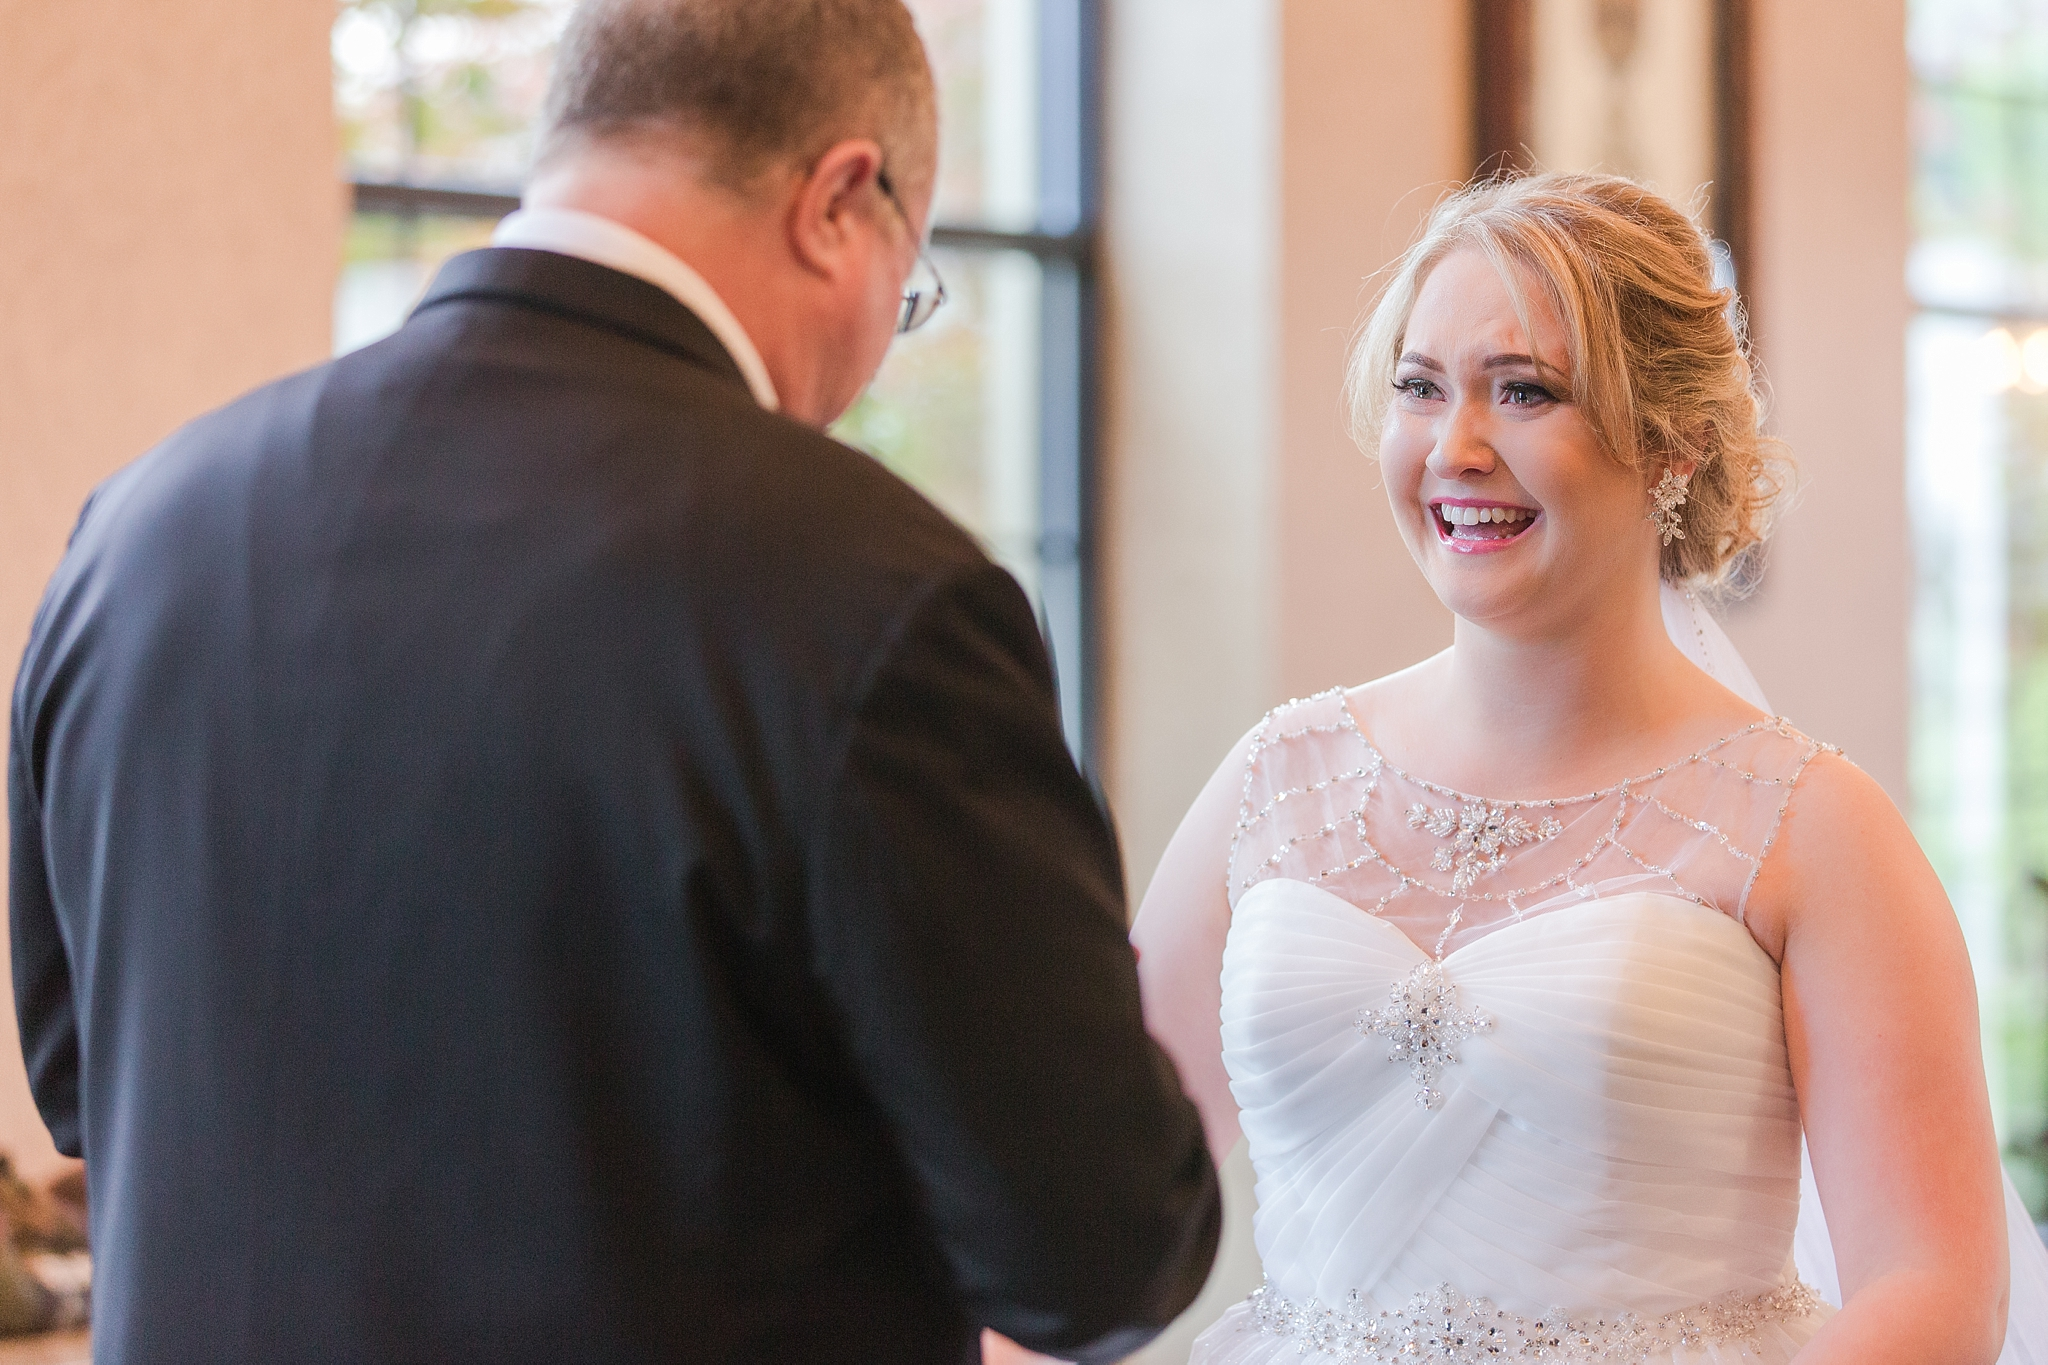 romantic-artful-candid-wedding-photos-in-detroit-lansing-ann-arbor-northern-michigan-and-chicago-by-courtney-carolyn-photography_0072.jpg